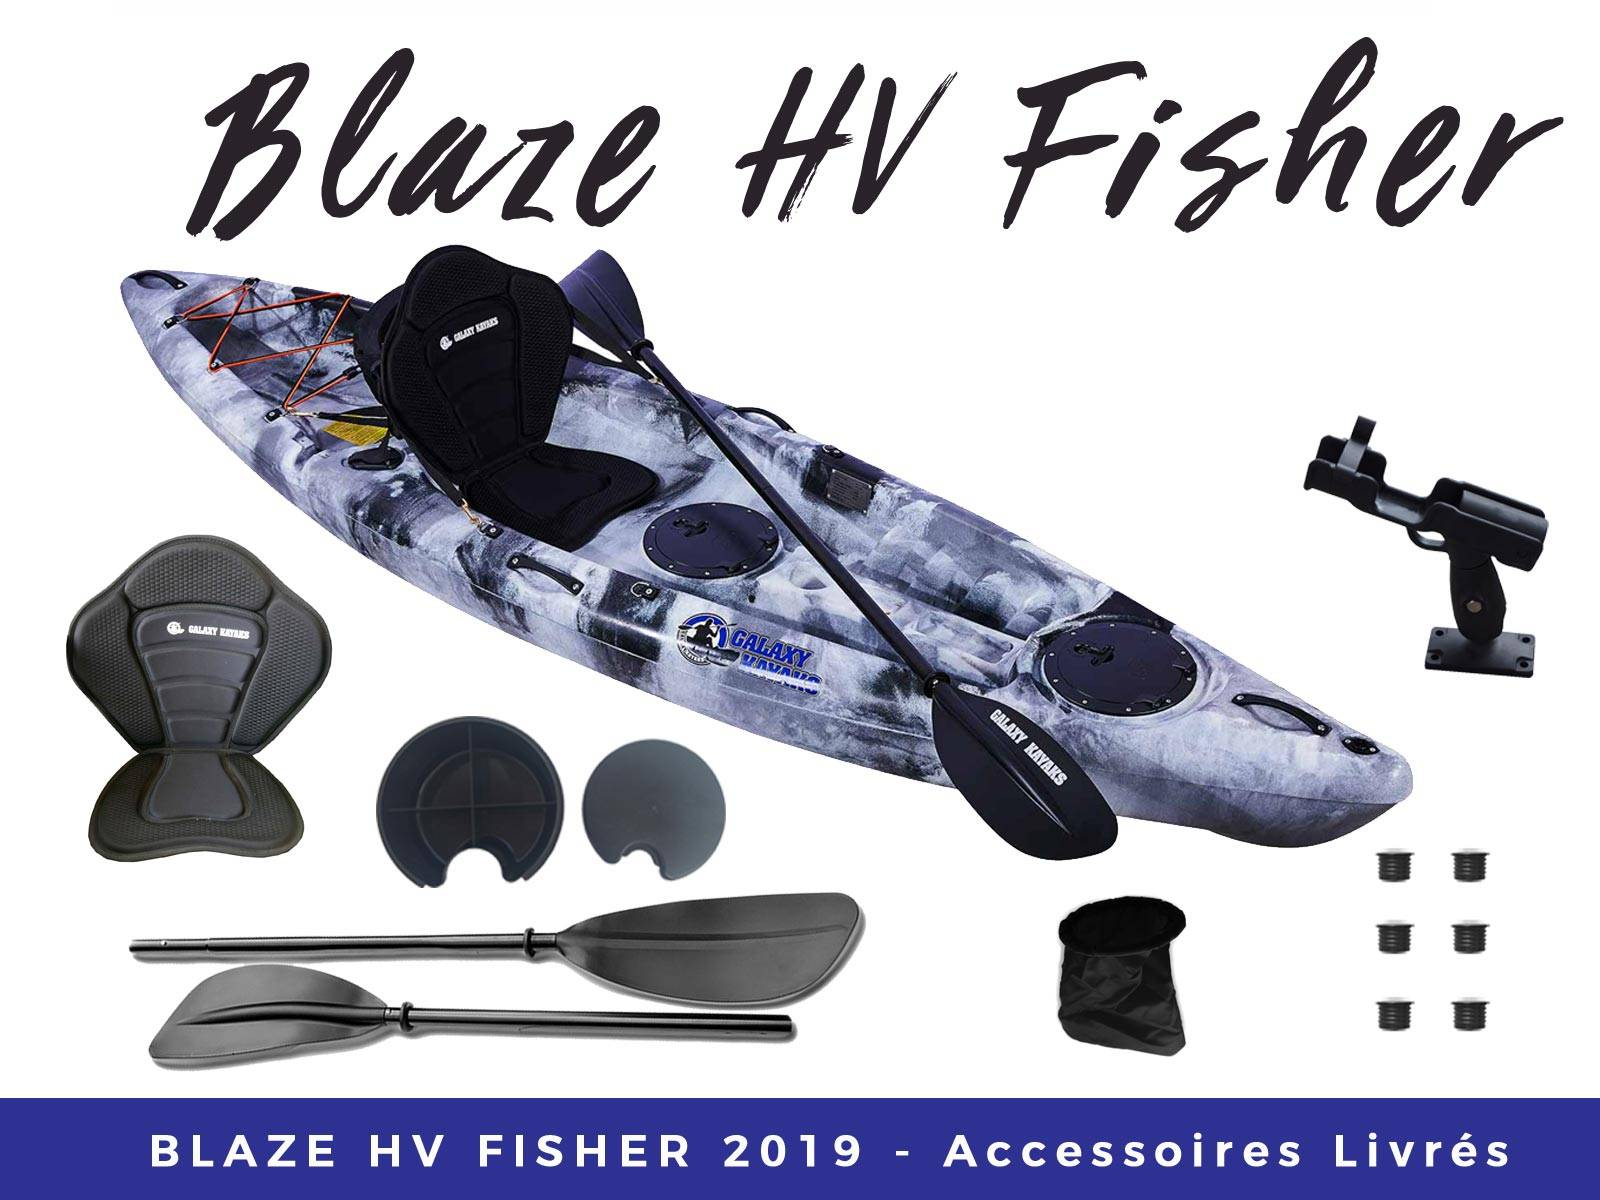 Blaze HV Fisher